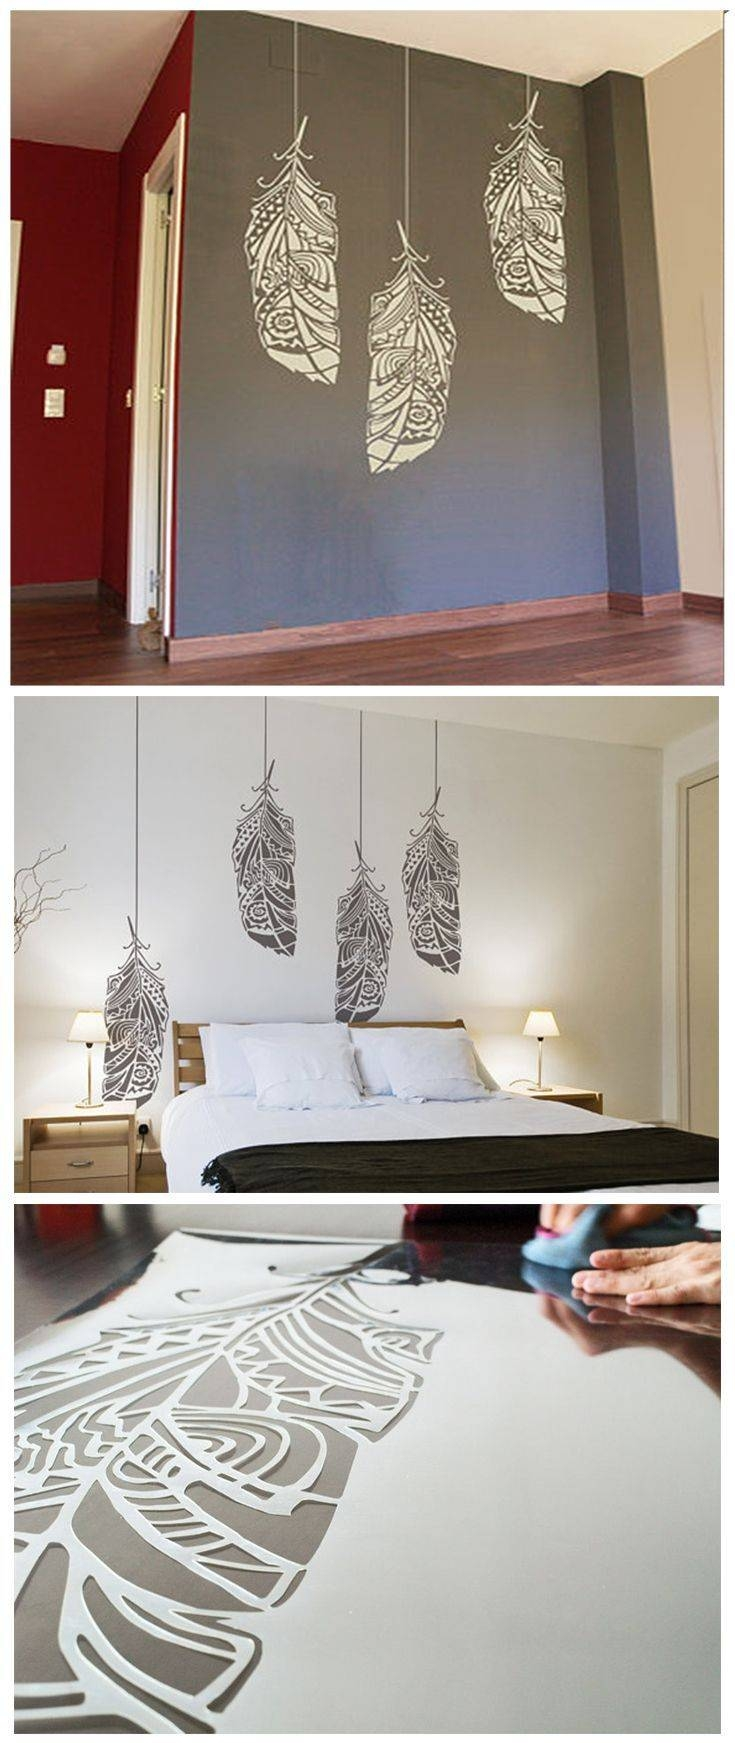 Best 25+ Wall Paintings Ideas On Pinterest | Diy Wall Painting Throughout Latest Pinterest Wall Art Decor (View 17 of 25)